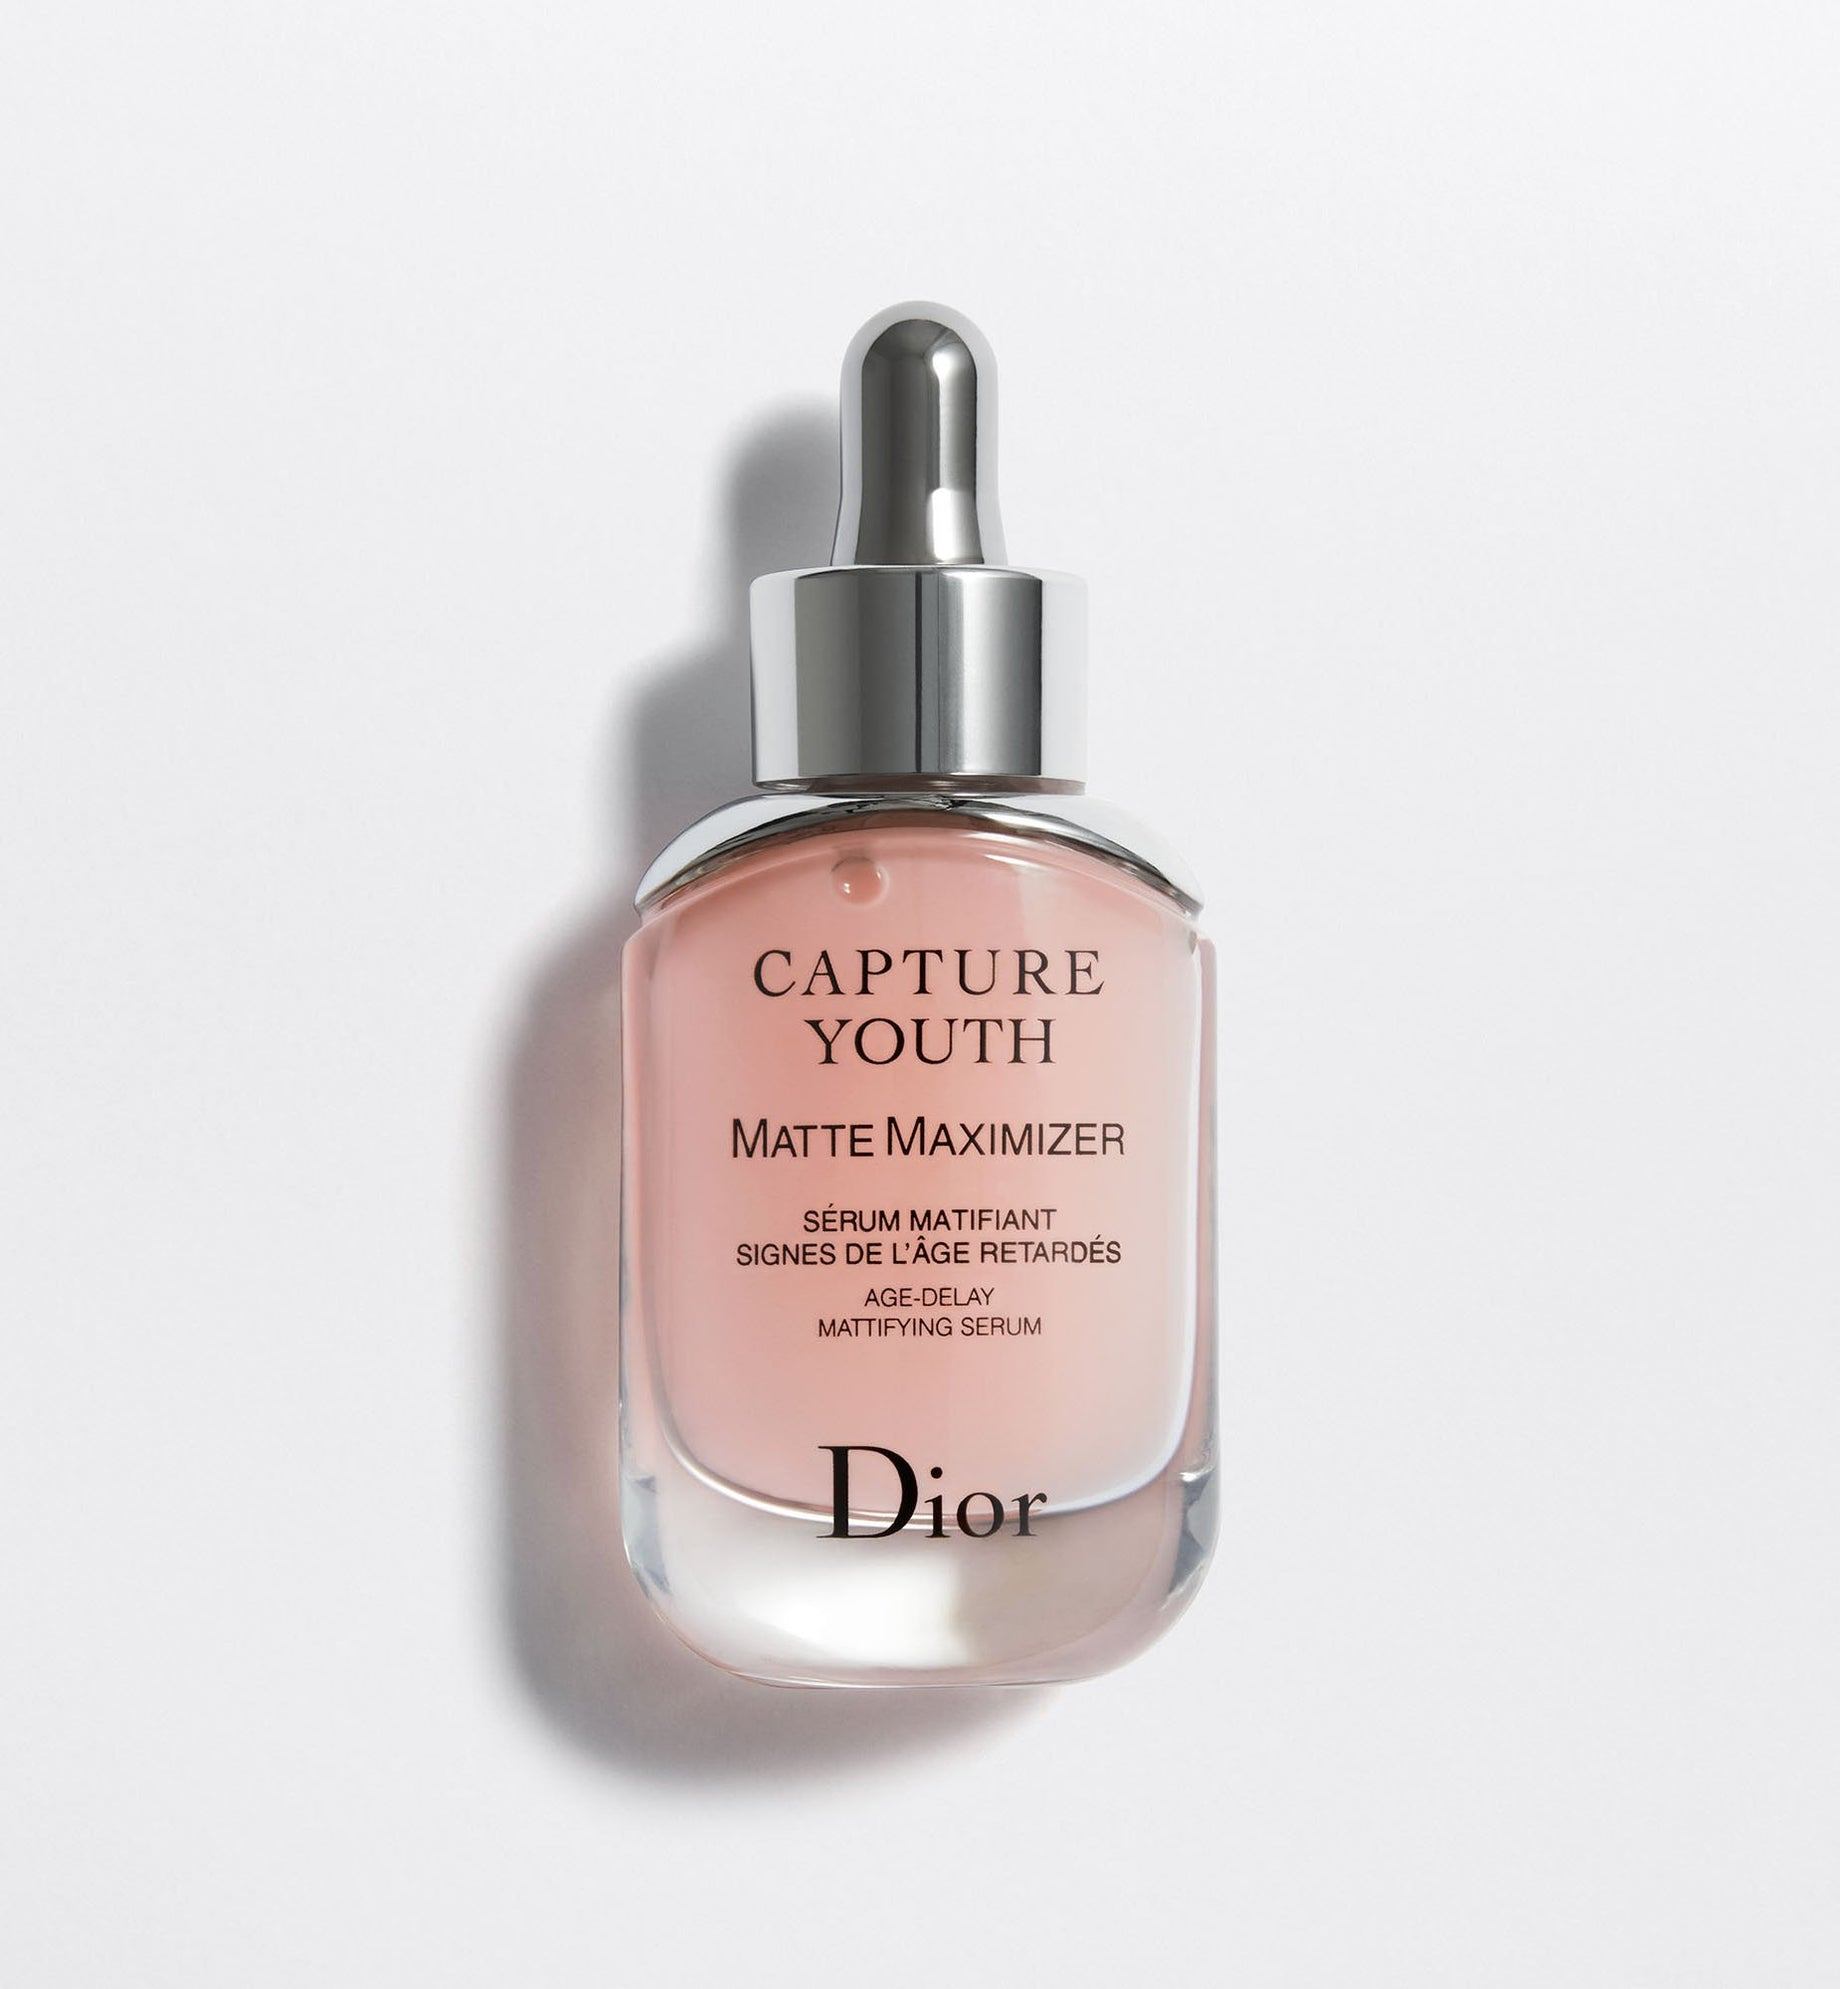 CAPTURE YOUTH MATTE MAXIMIZER - AGE-DELAY MATIFYING SERUM